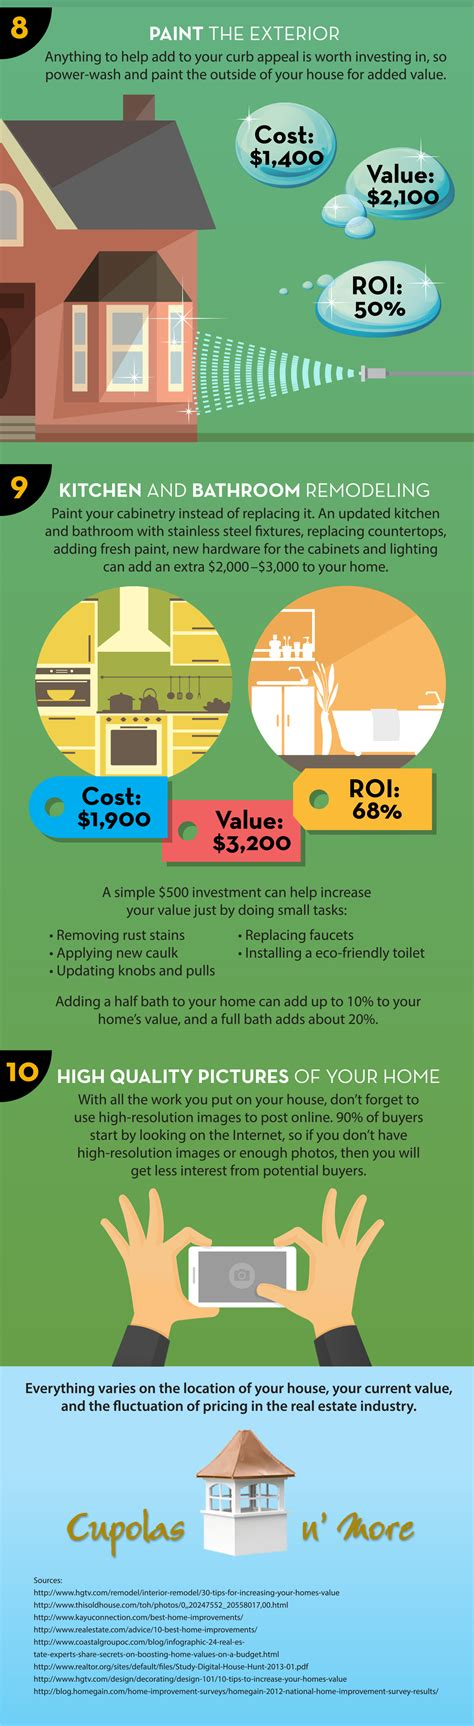 10 cheap ways to increase a home s value rick